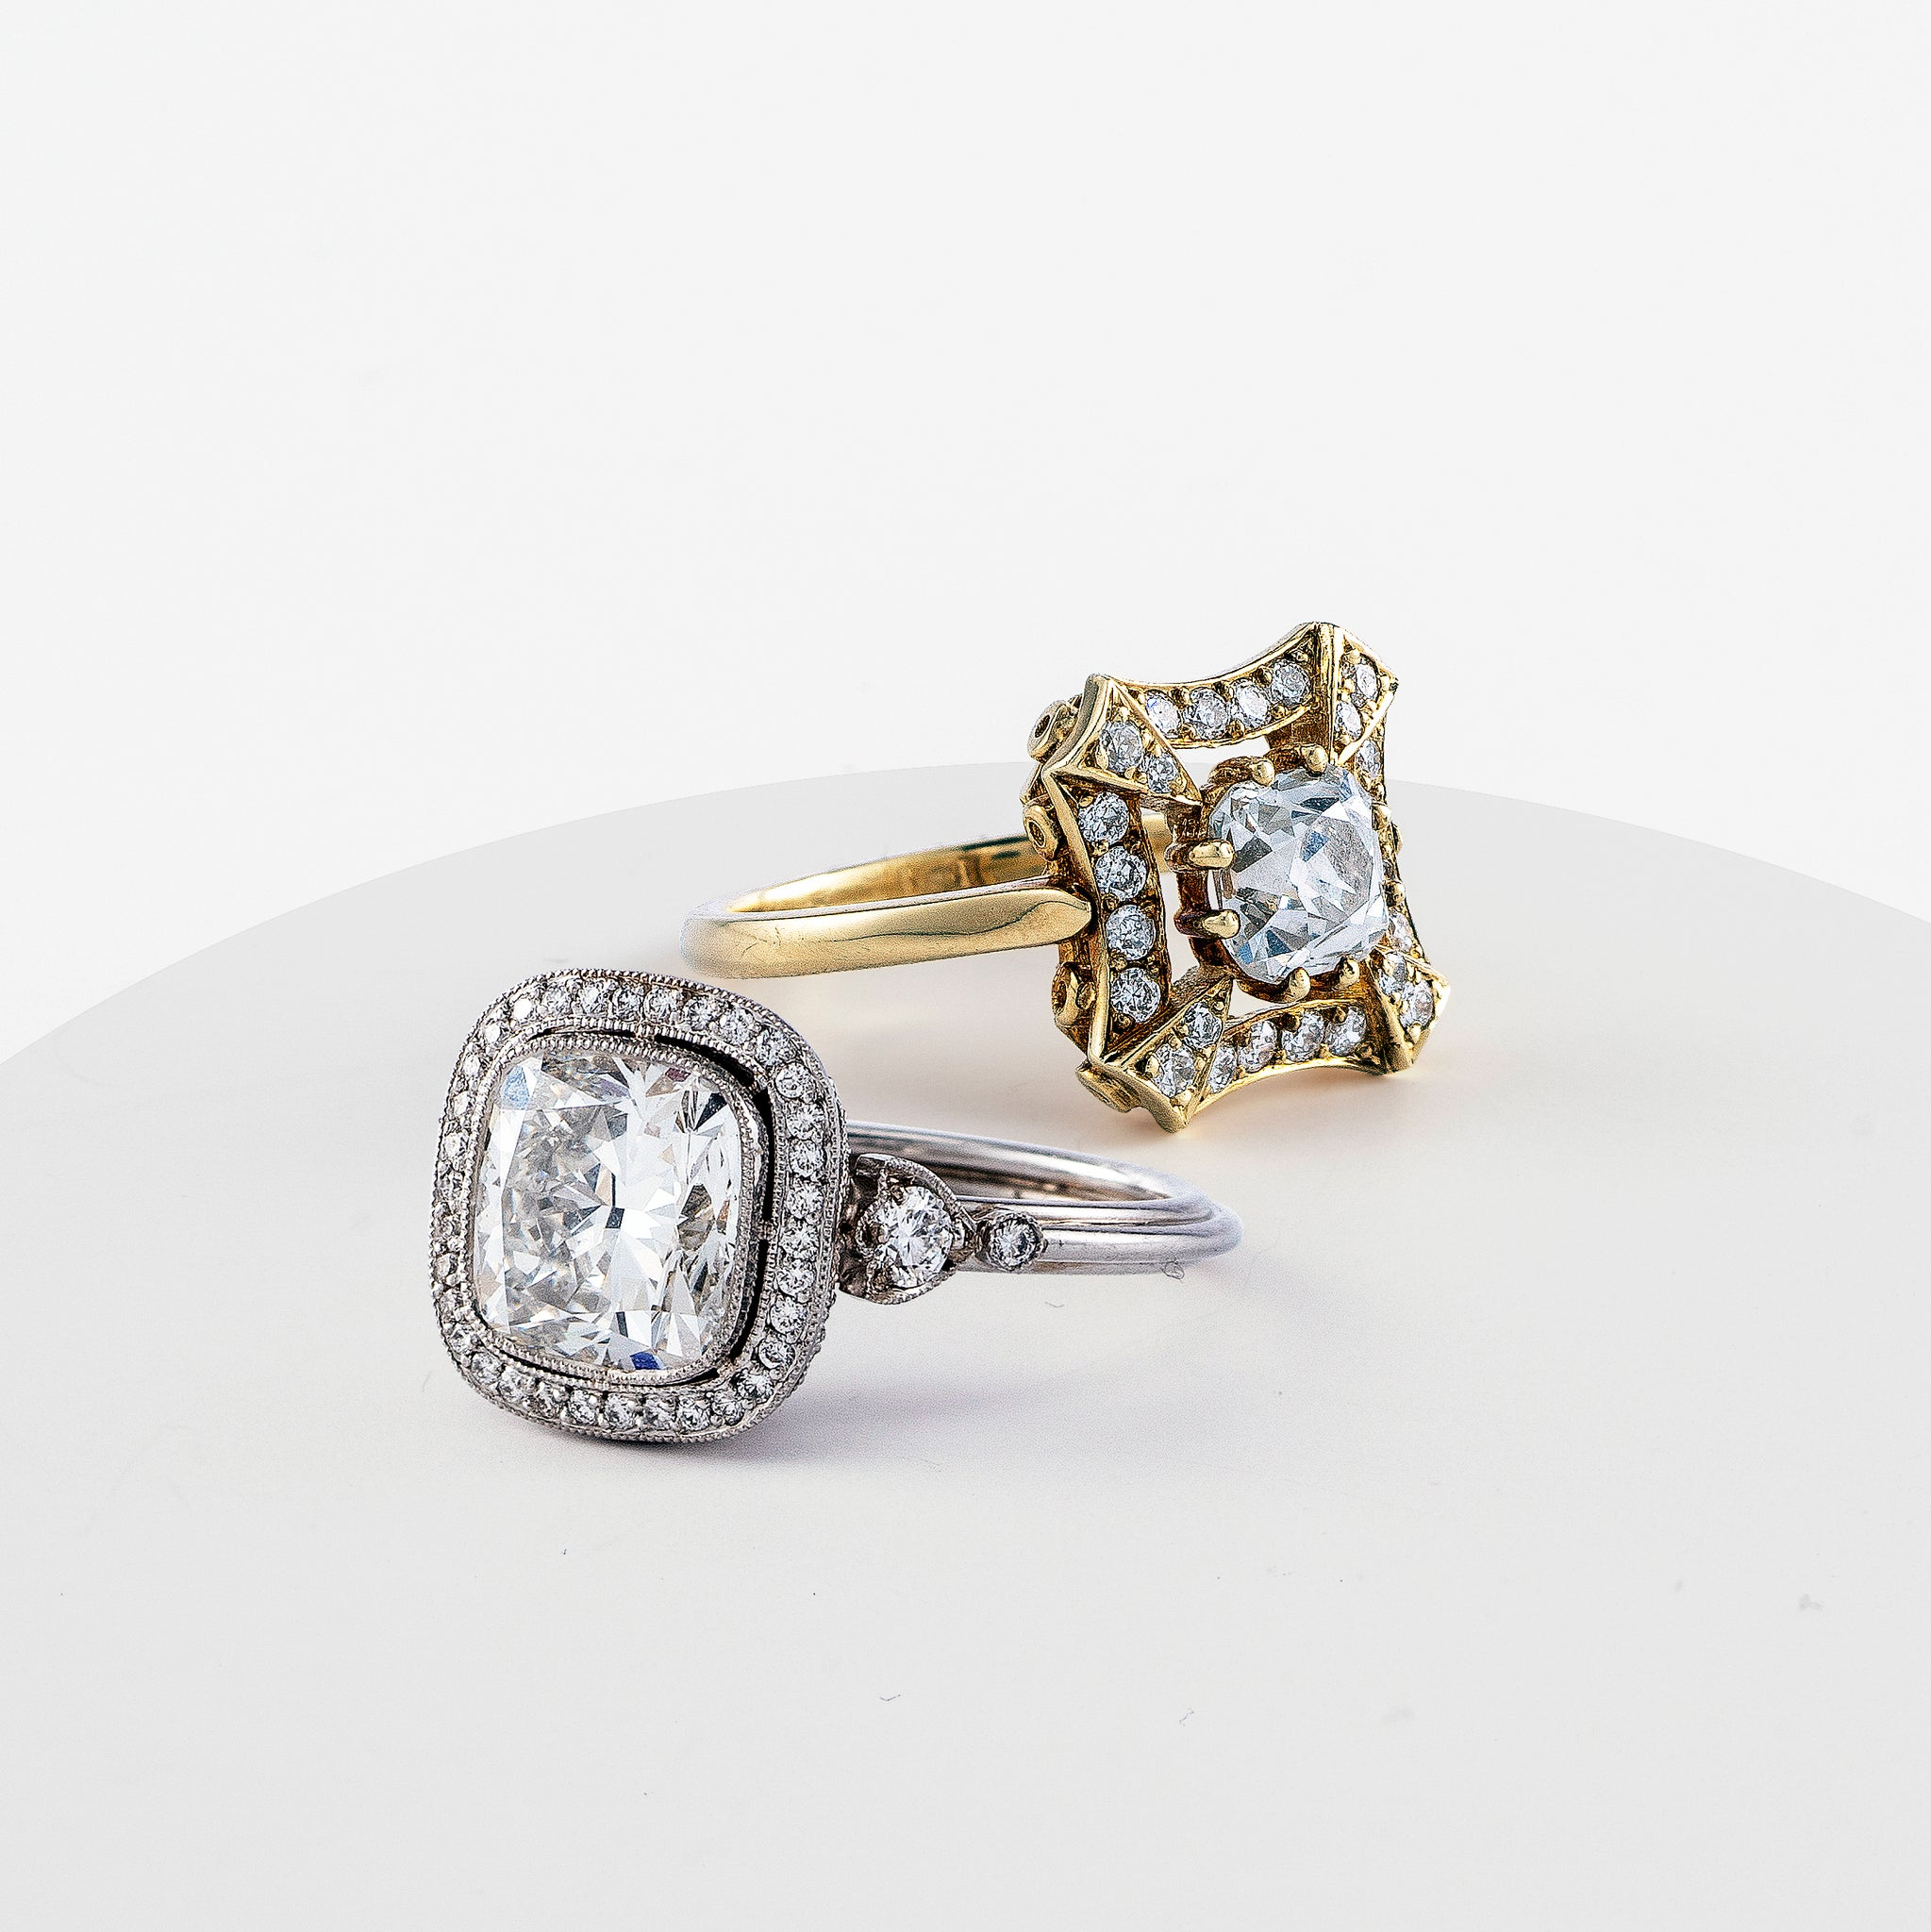 Engagement Rings - Downtown L.A. Jeweler